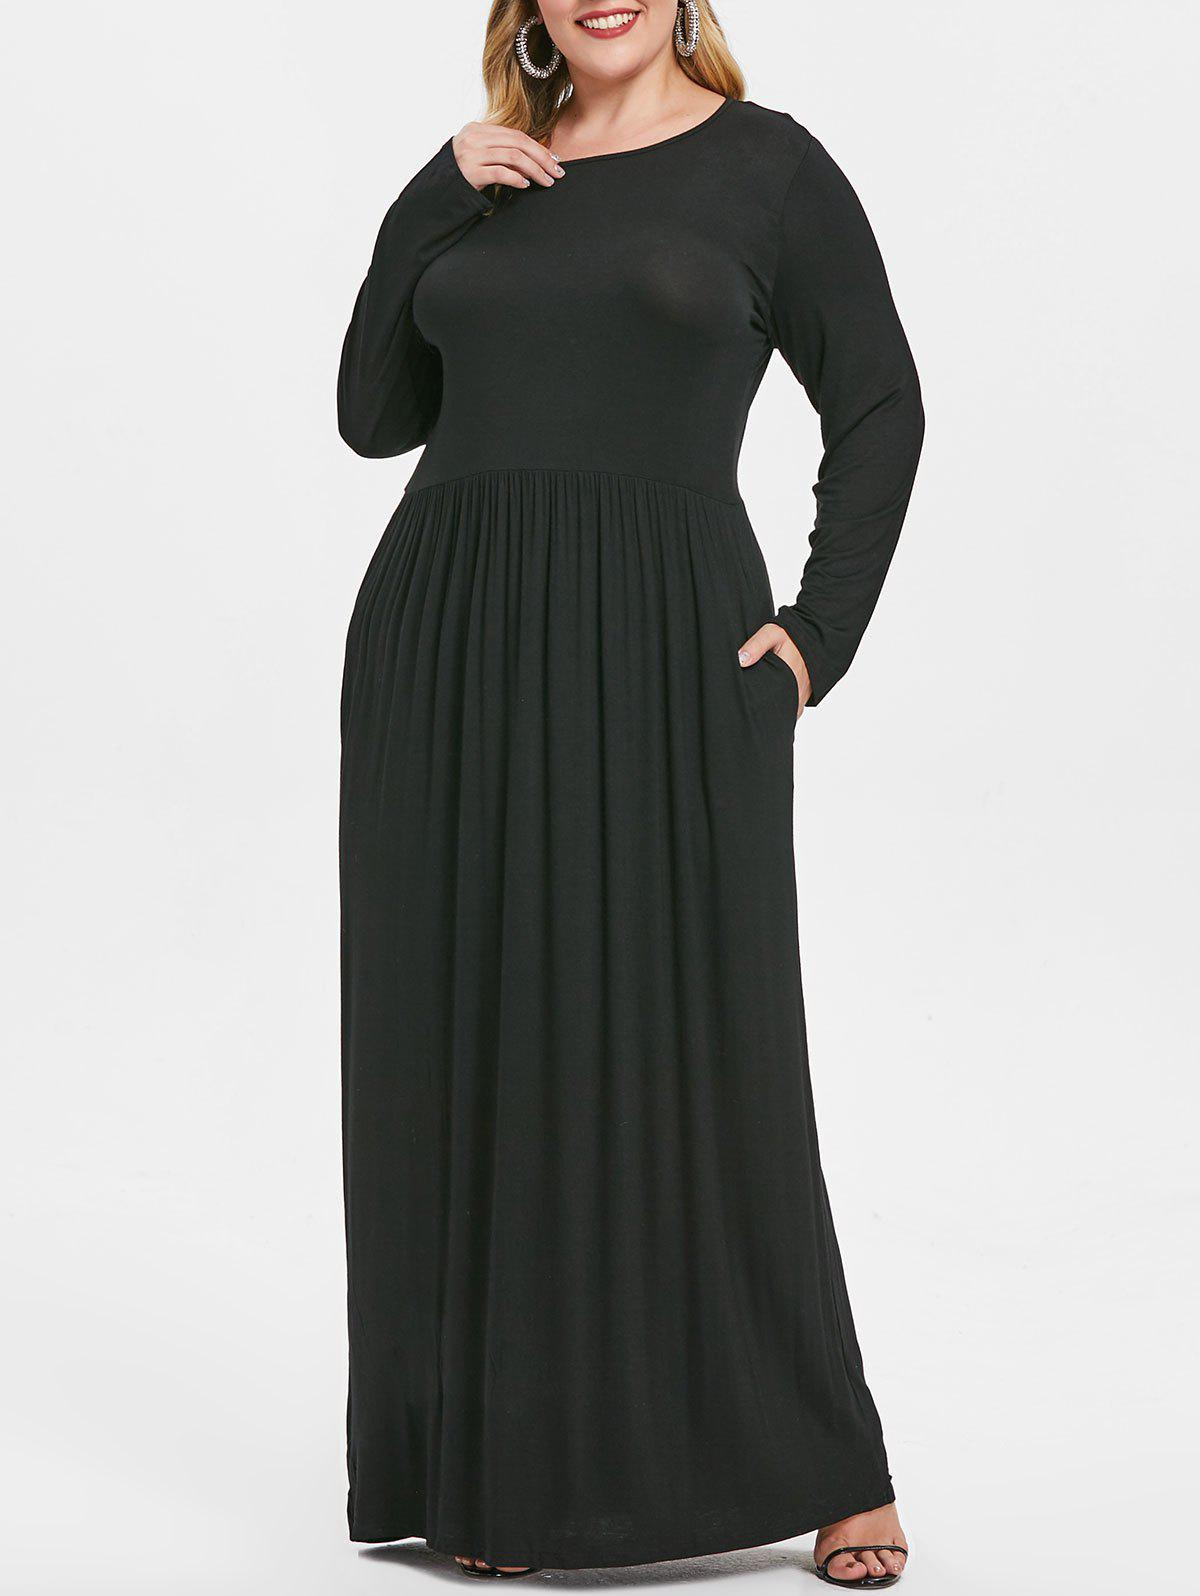 9b41f48bb7 26% OFF] Long Sleeve Elastic Waist Plus Size Maxi Dress | Rosegal